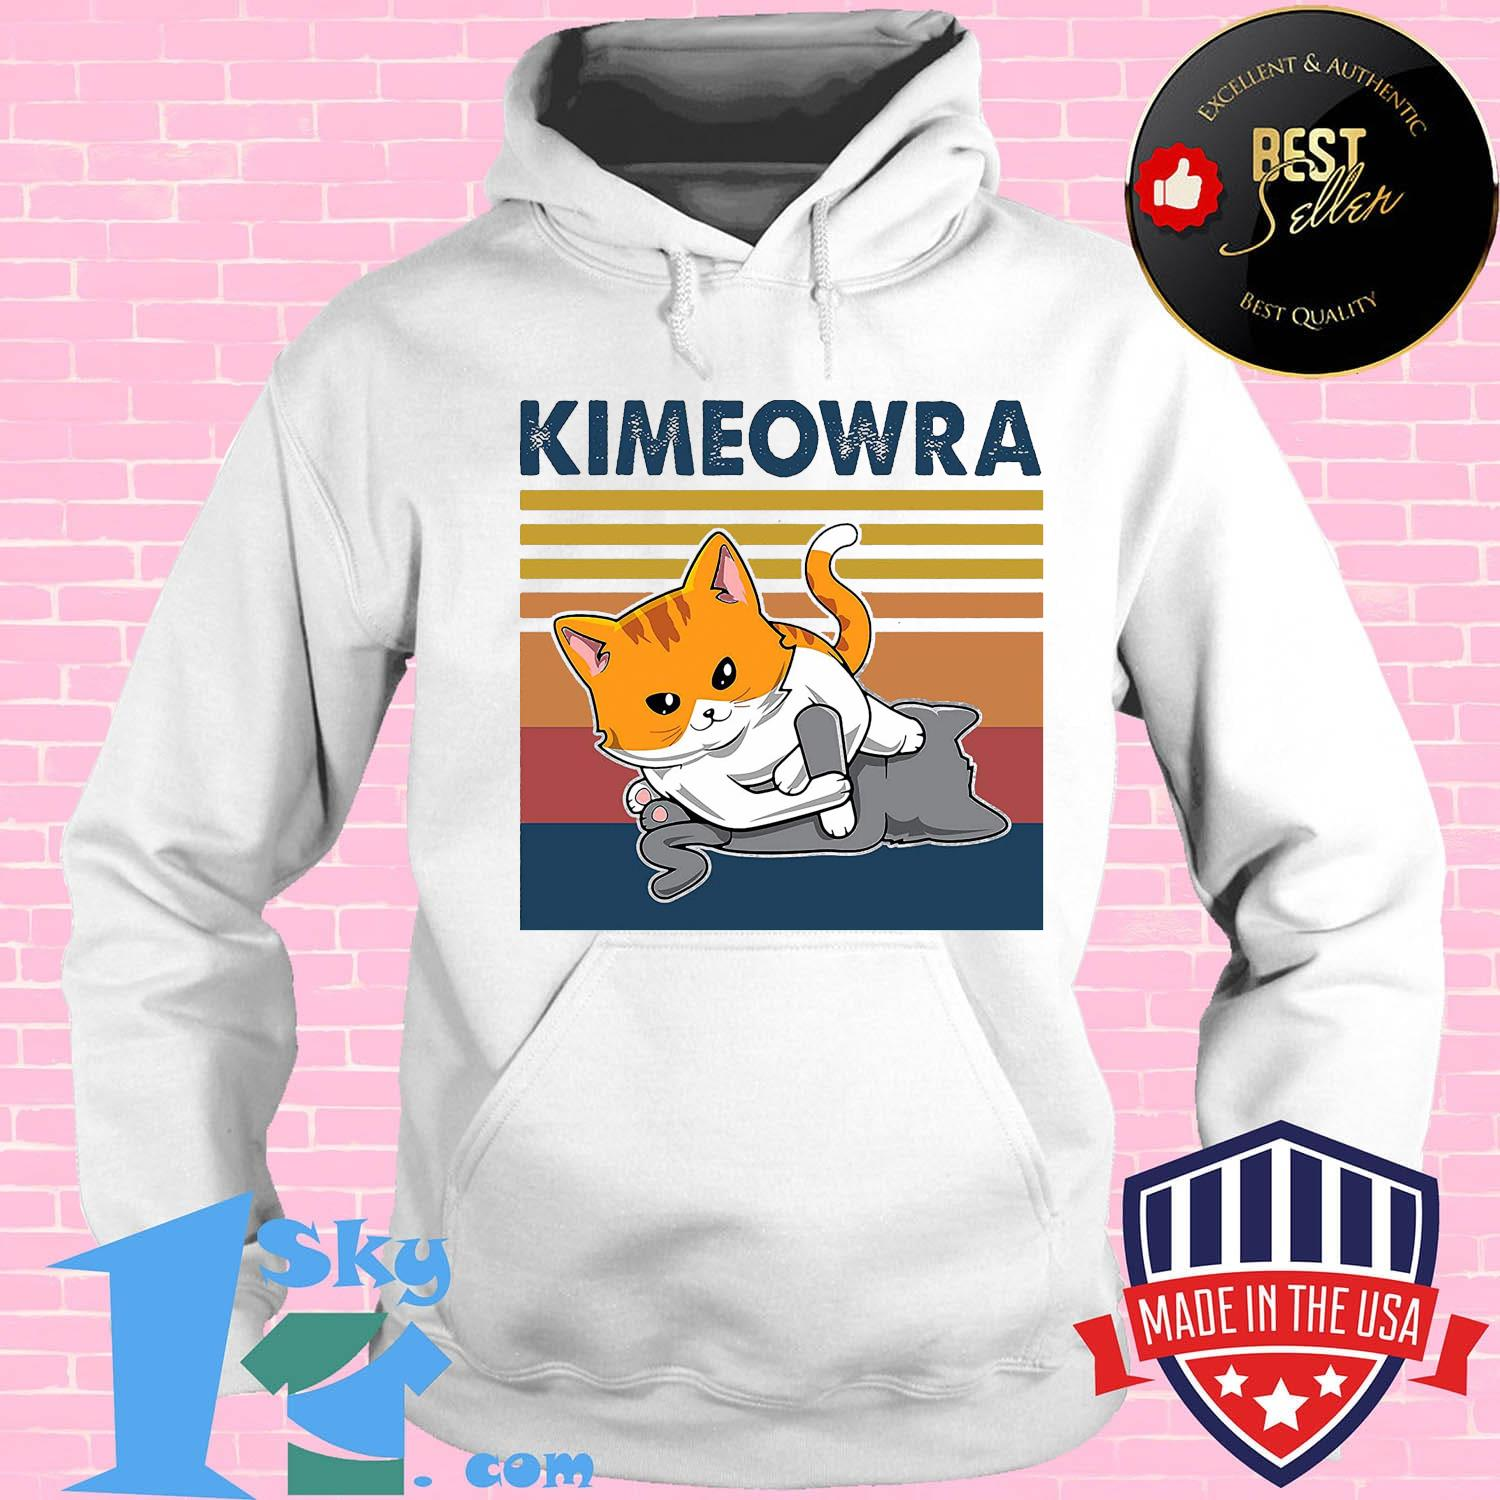 7c217ee3 cat kimeowra vintage retro shirt hoodie - Shop trending - We offer all trend shirts - 1SkyTee